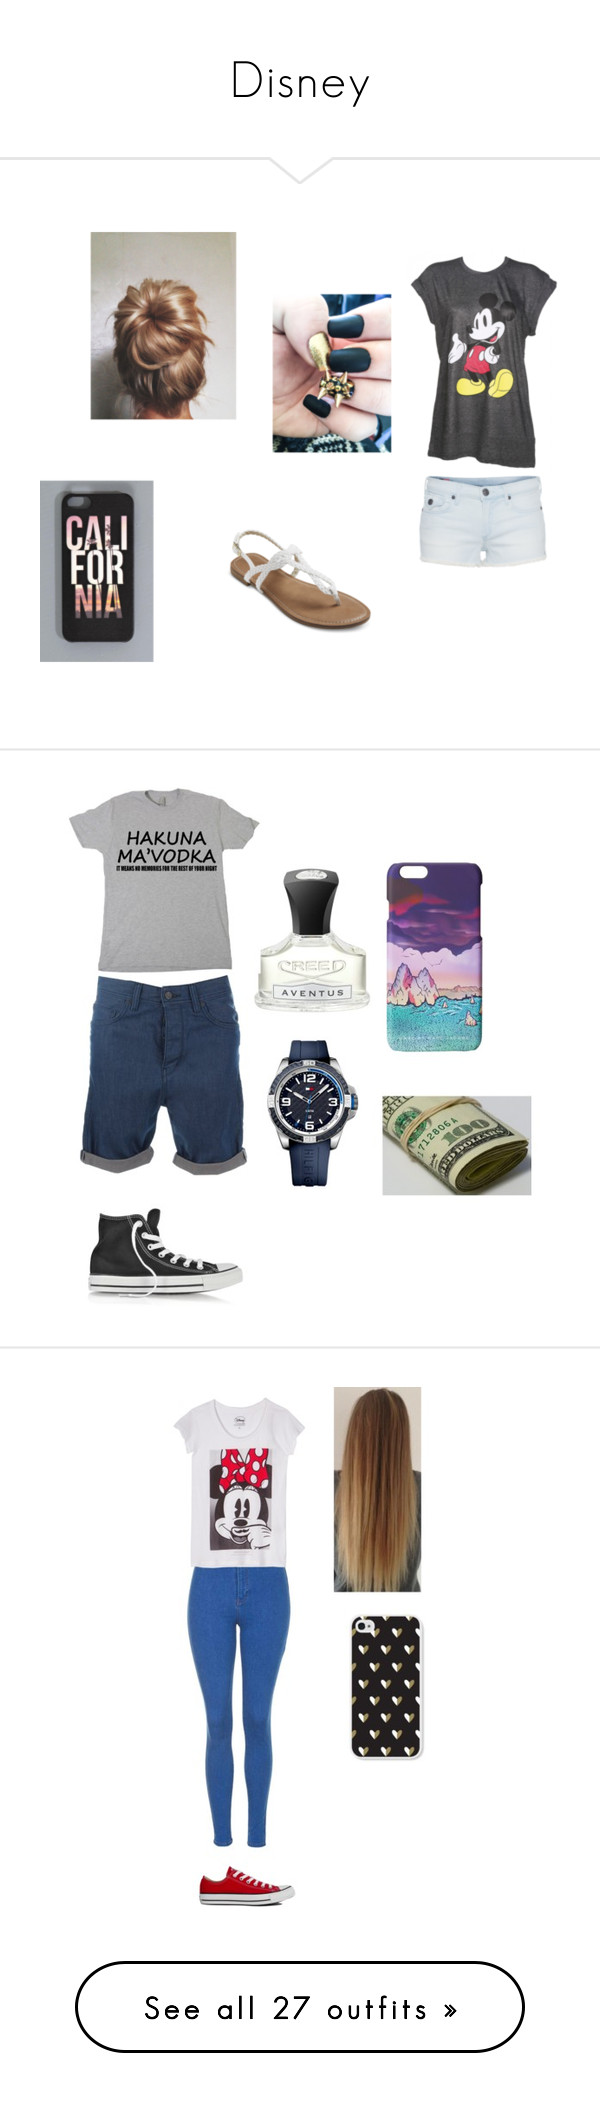 """Disney"" by alicia-brockett ❤ liked on Polyvore featuring True Religion, House of Fraser, Marc by Marc Jacobs, Converse, Topshop, ElevenParis, Miss Selfridge, Dr. Martens, Disney and Vans"